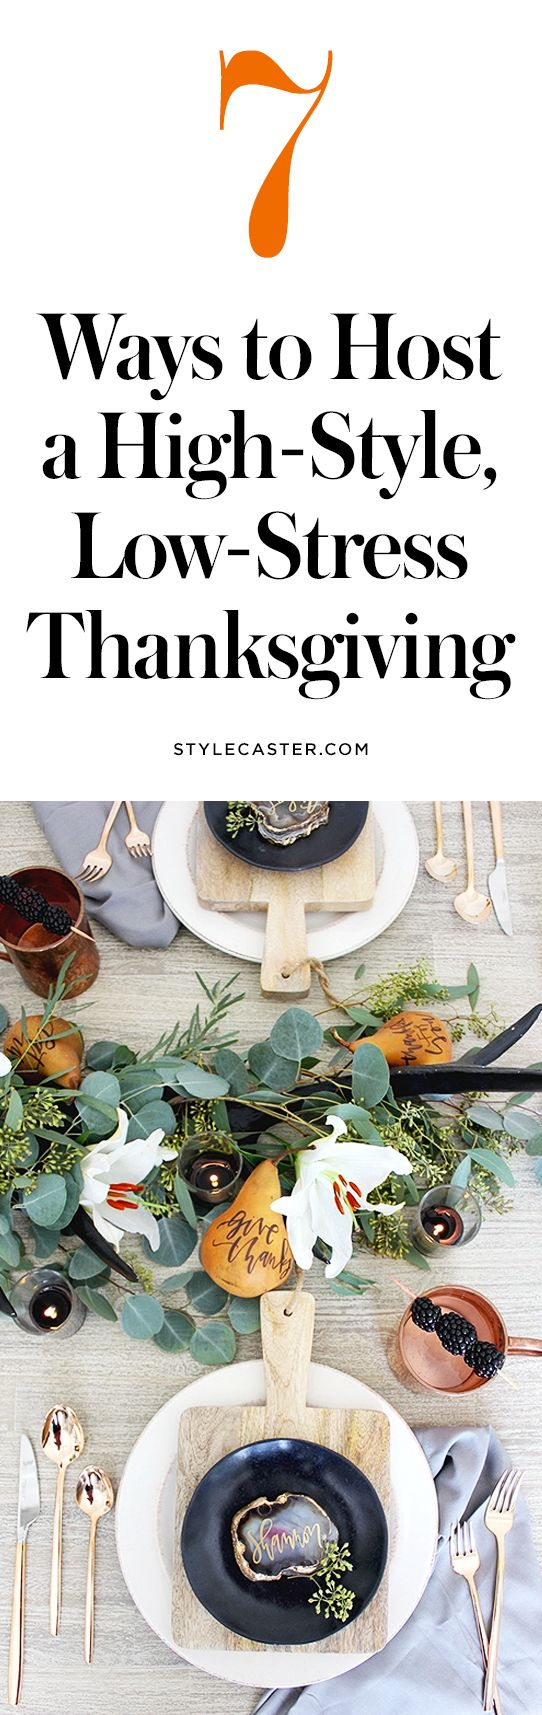 7 Expert Tips on how to host Thanksgiving dinner | Hosting | Holiday Decor + Table Settings | Friendsgiving Ideas @stylecaster